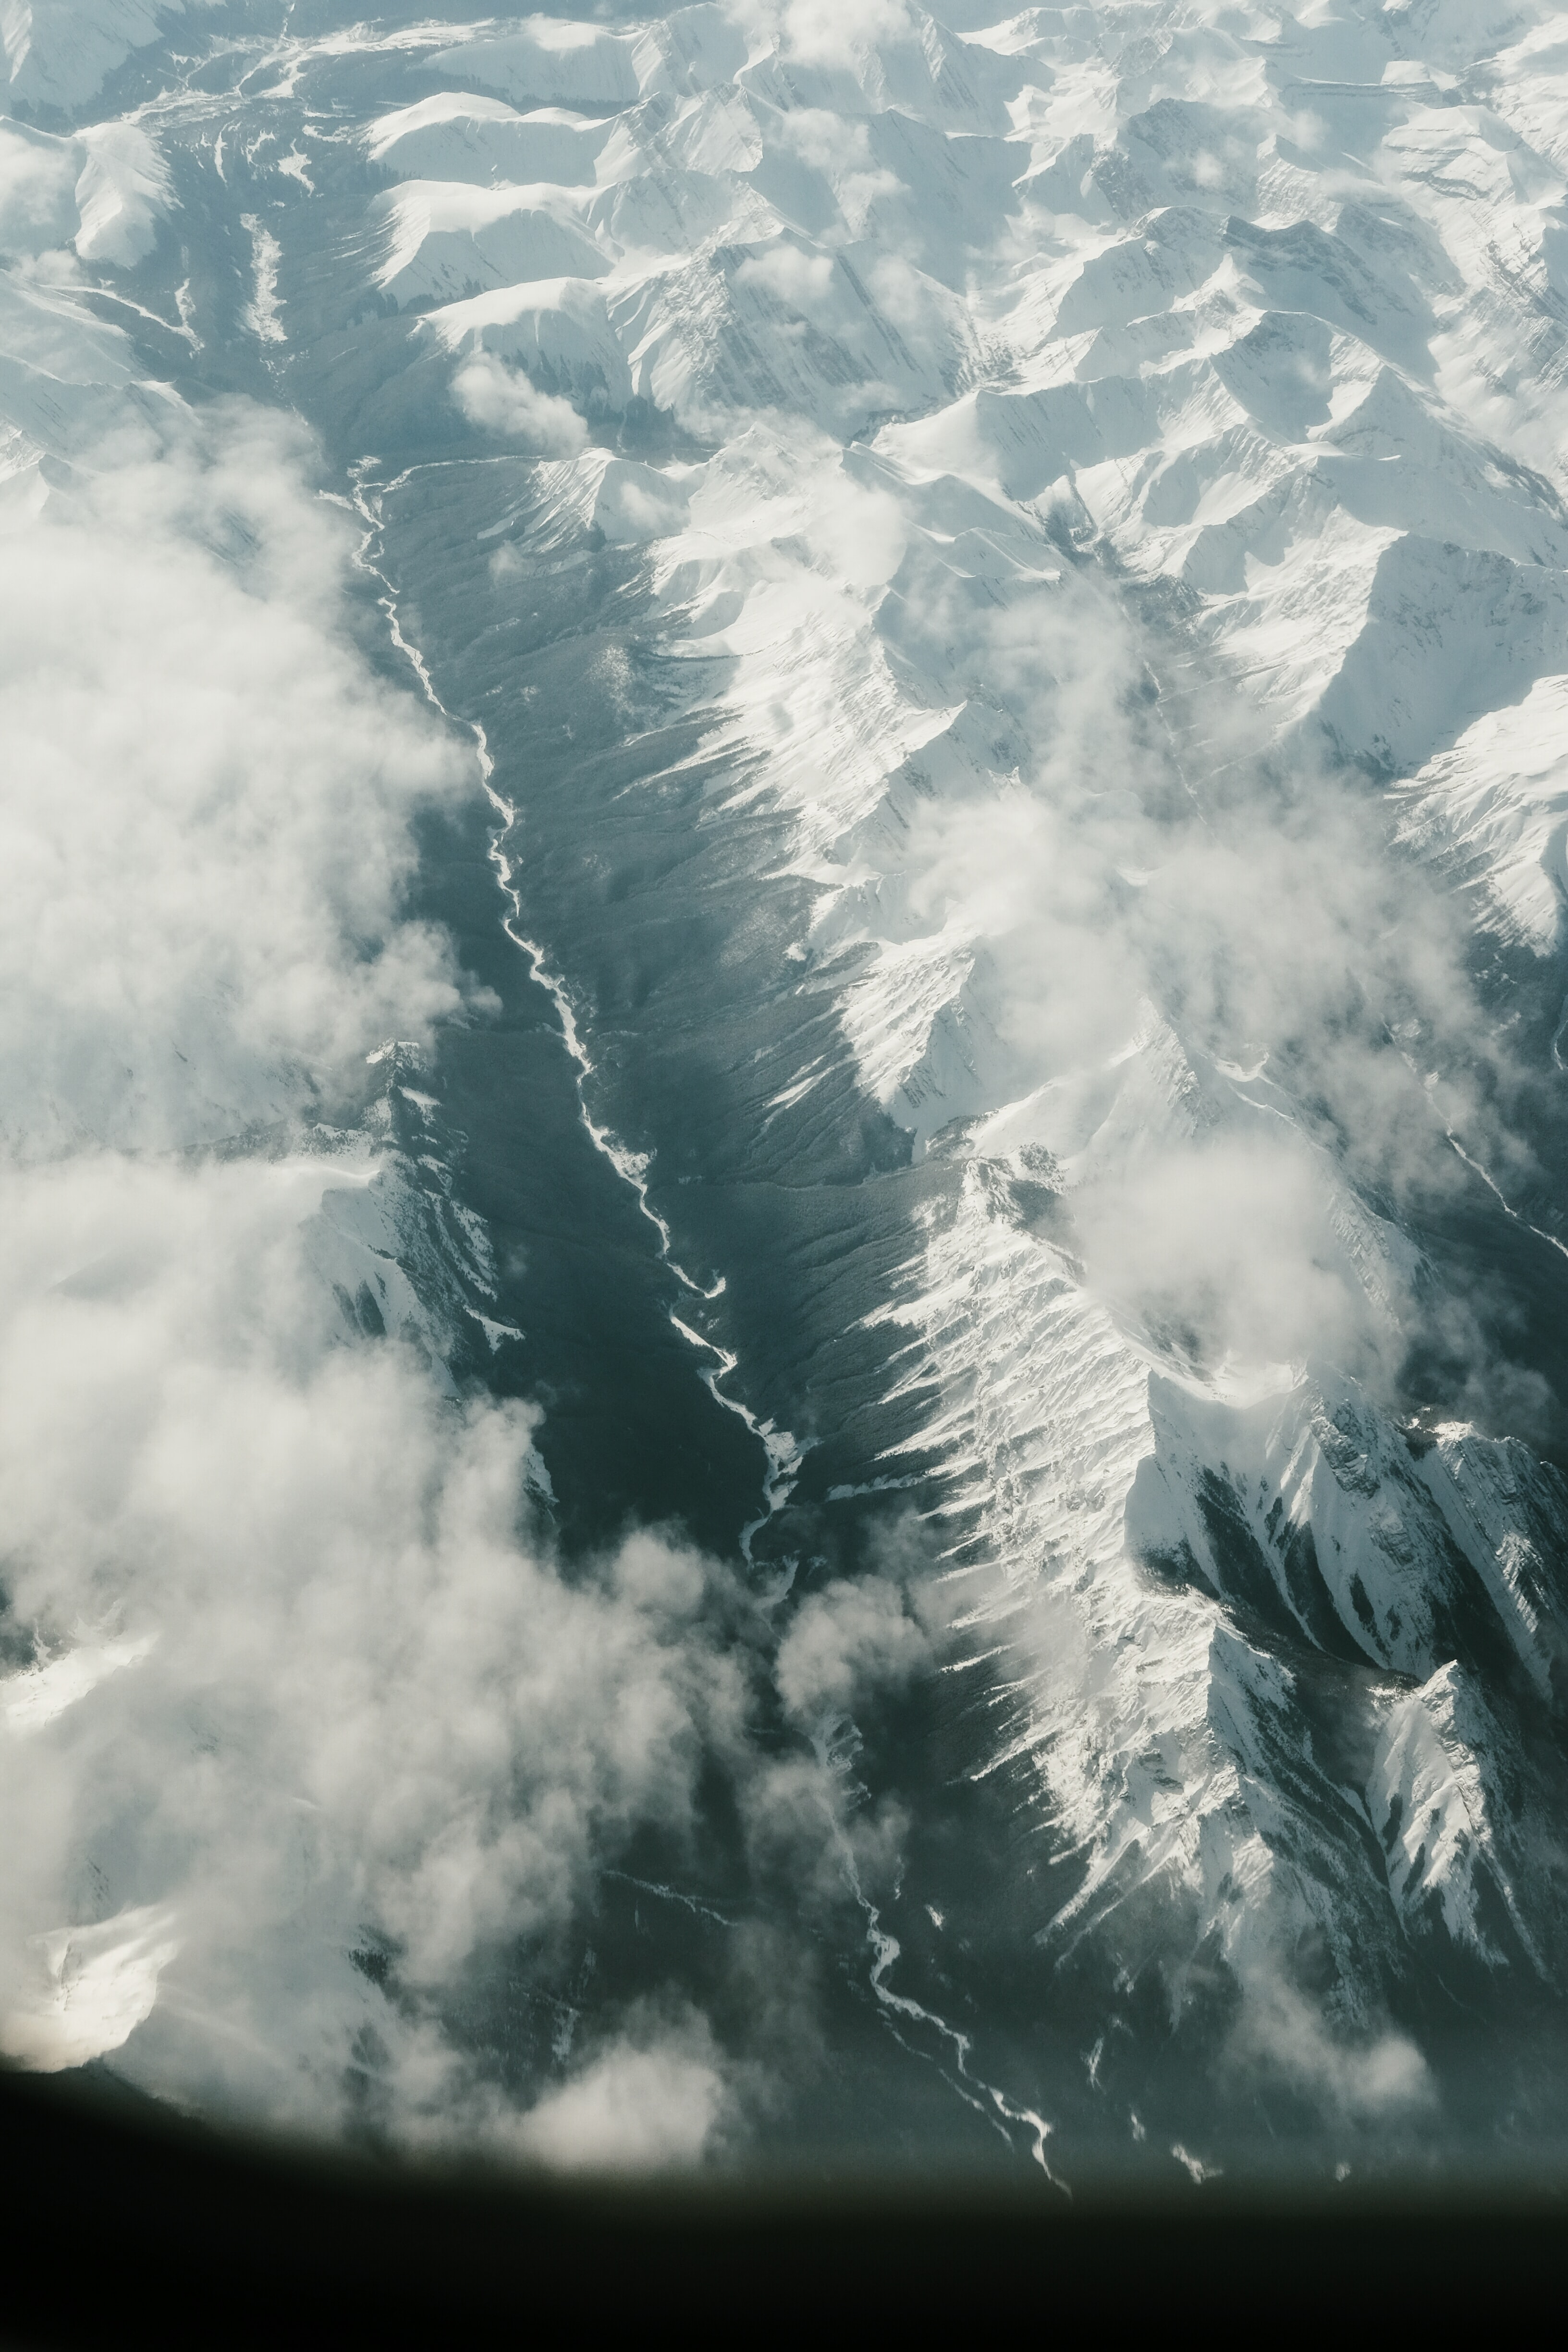 bird's eye photography of mountain with snow